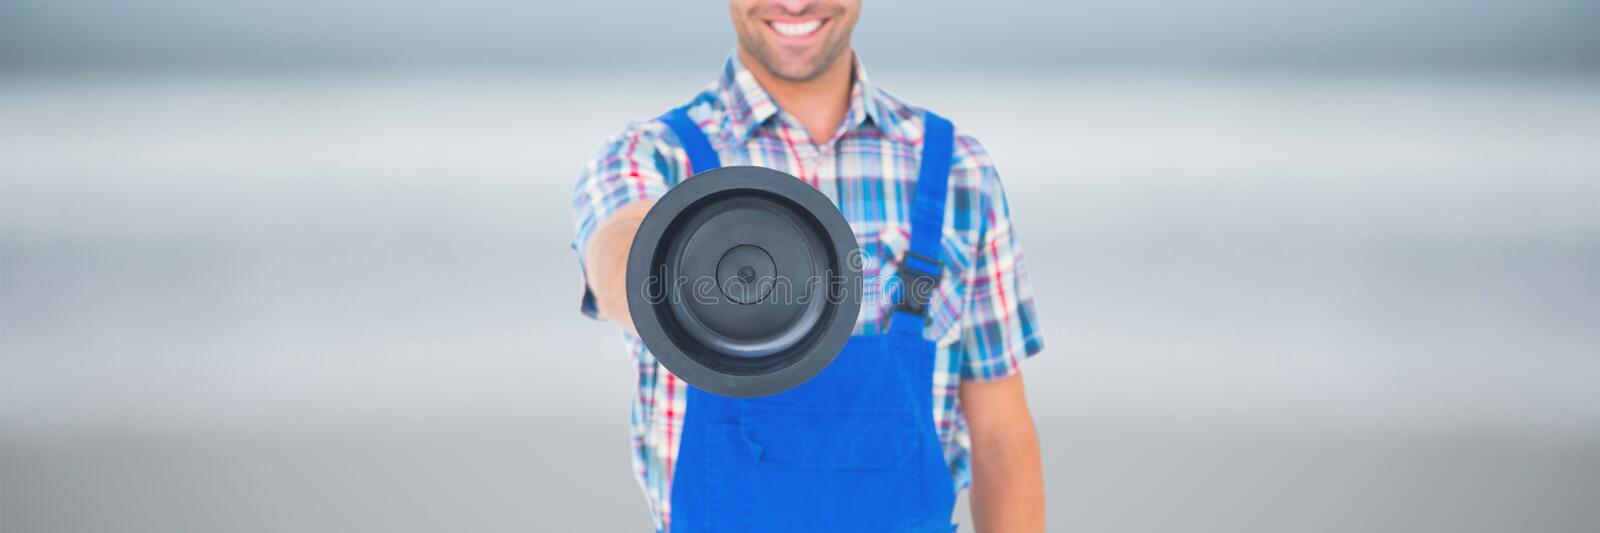 Happy plumber man holding a plunger. Digital composite of Happy plumber man holding a plunger royalty free stock photo